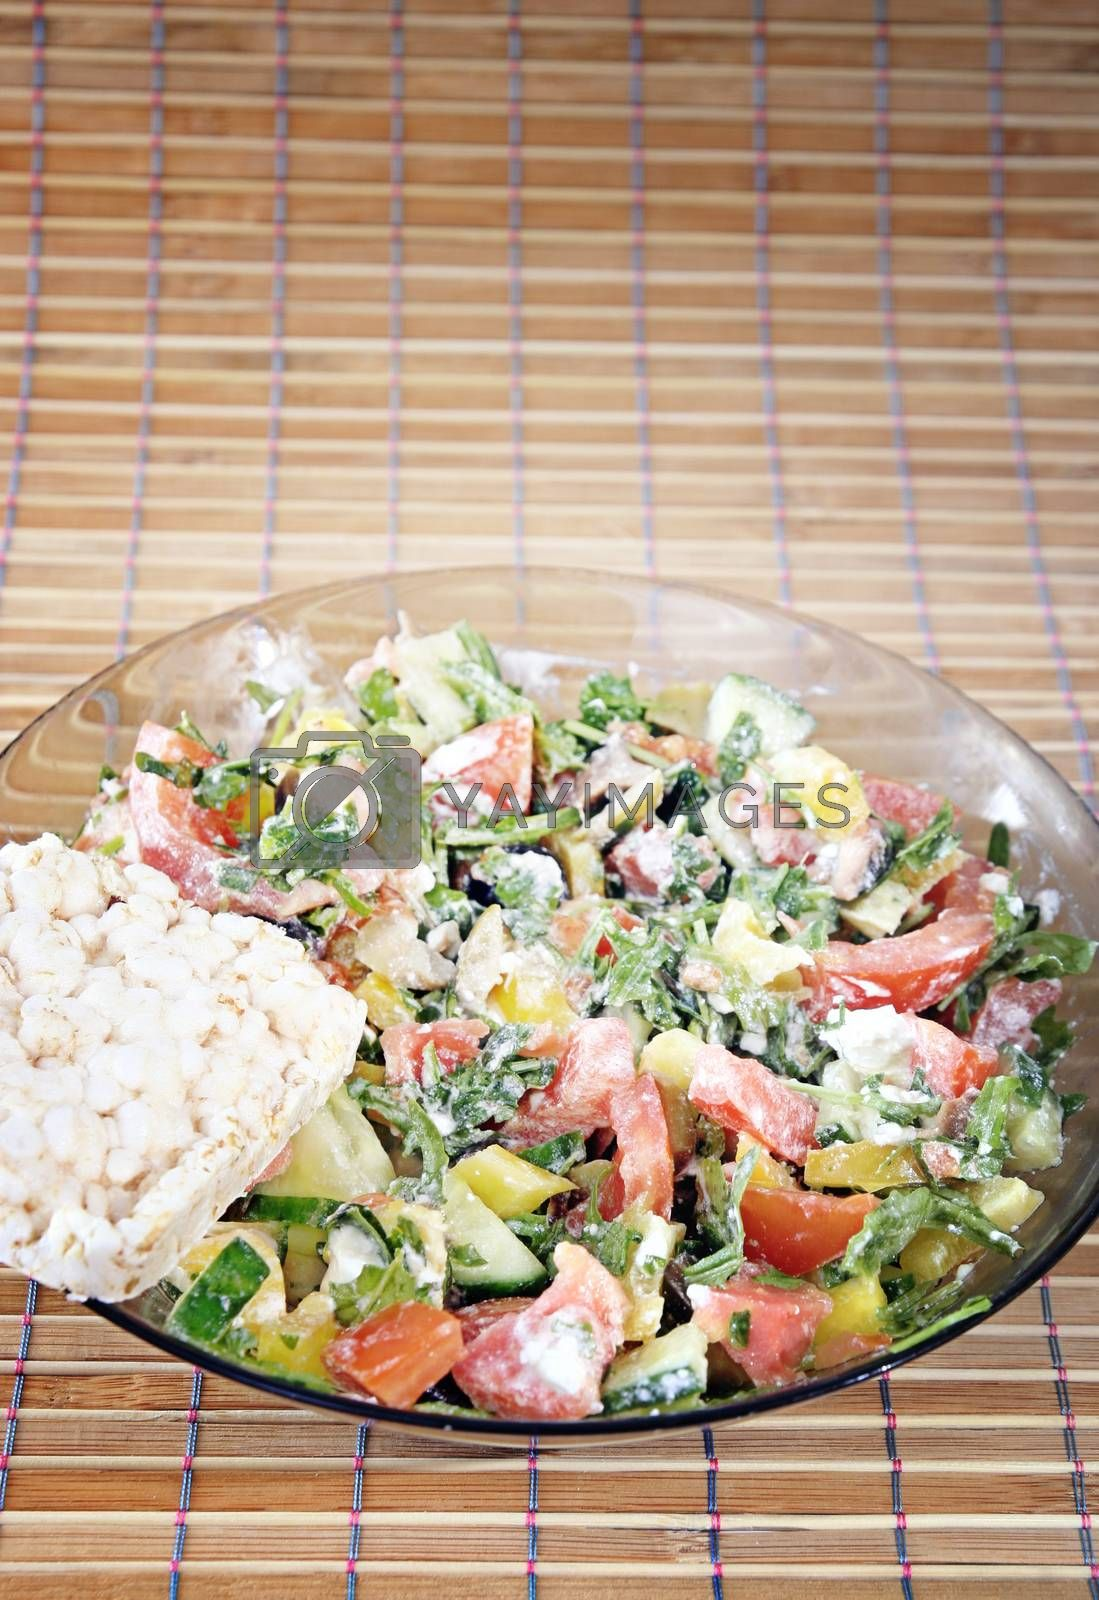 Healthy salad with vegetables and cheese